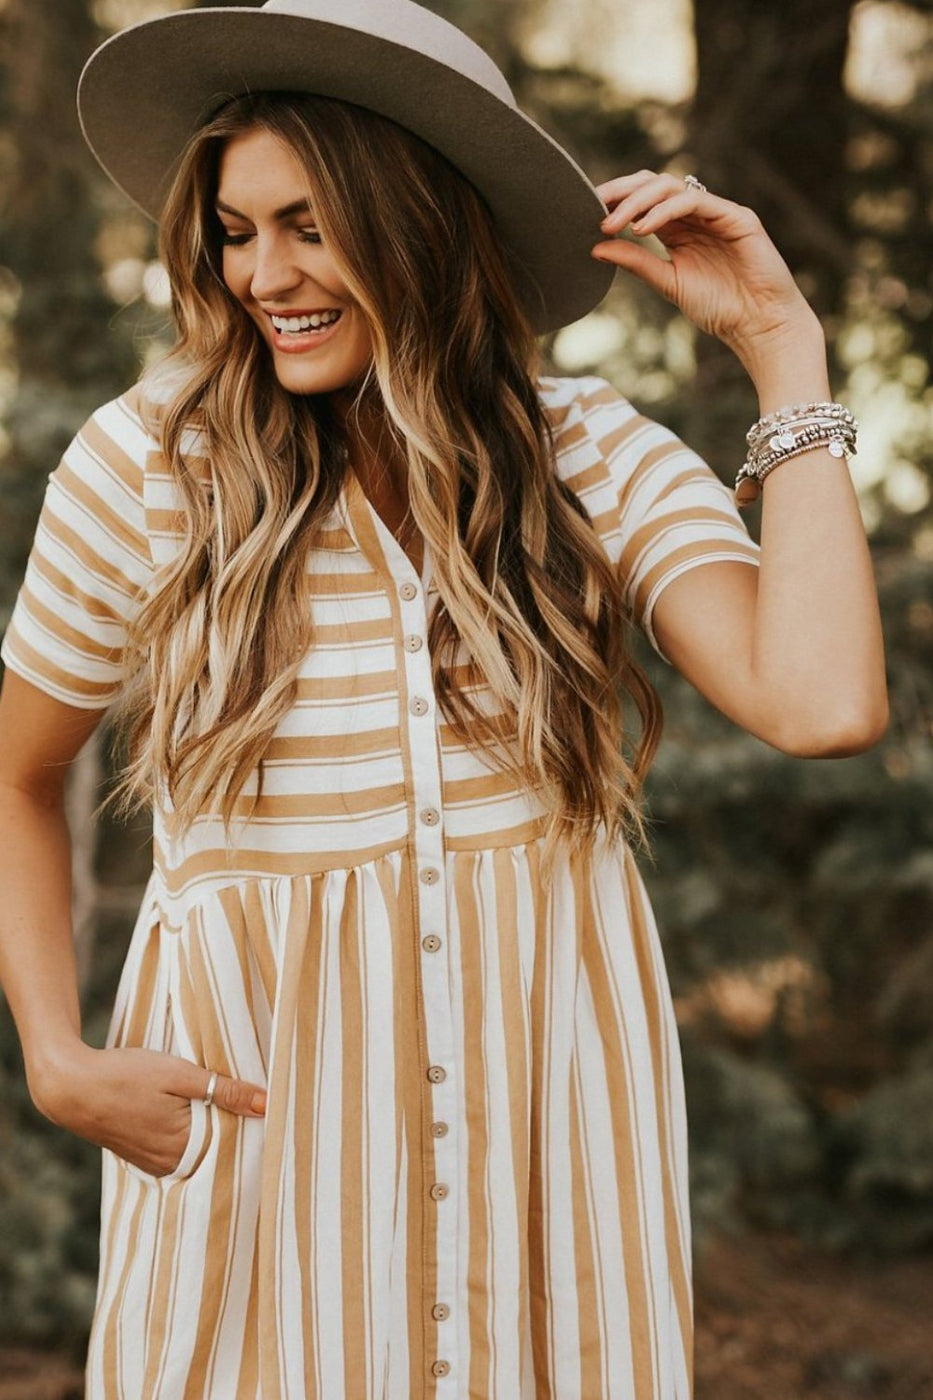 Dress Styles for Women 2019 | ROOLEE